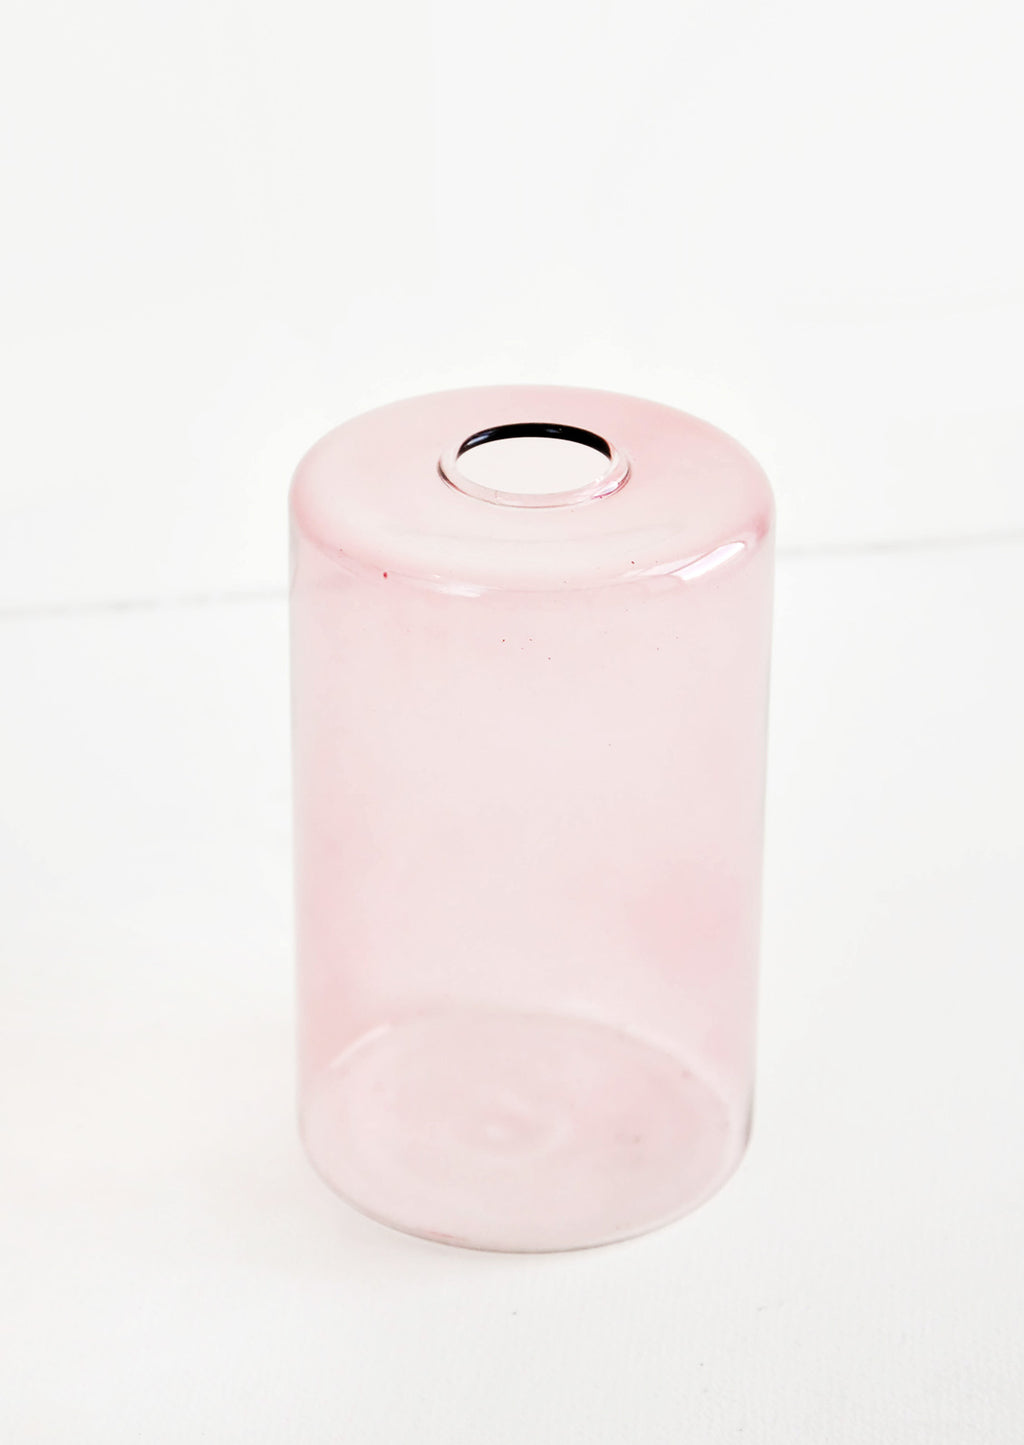 2: Colored glass flower vase in pink glass